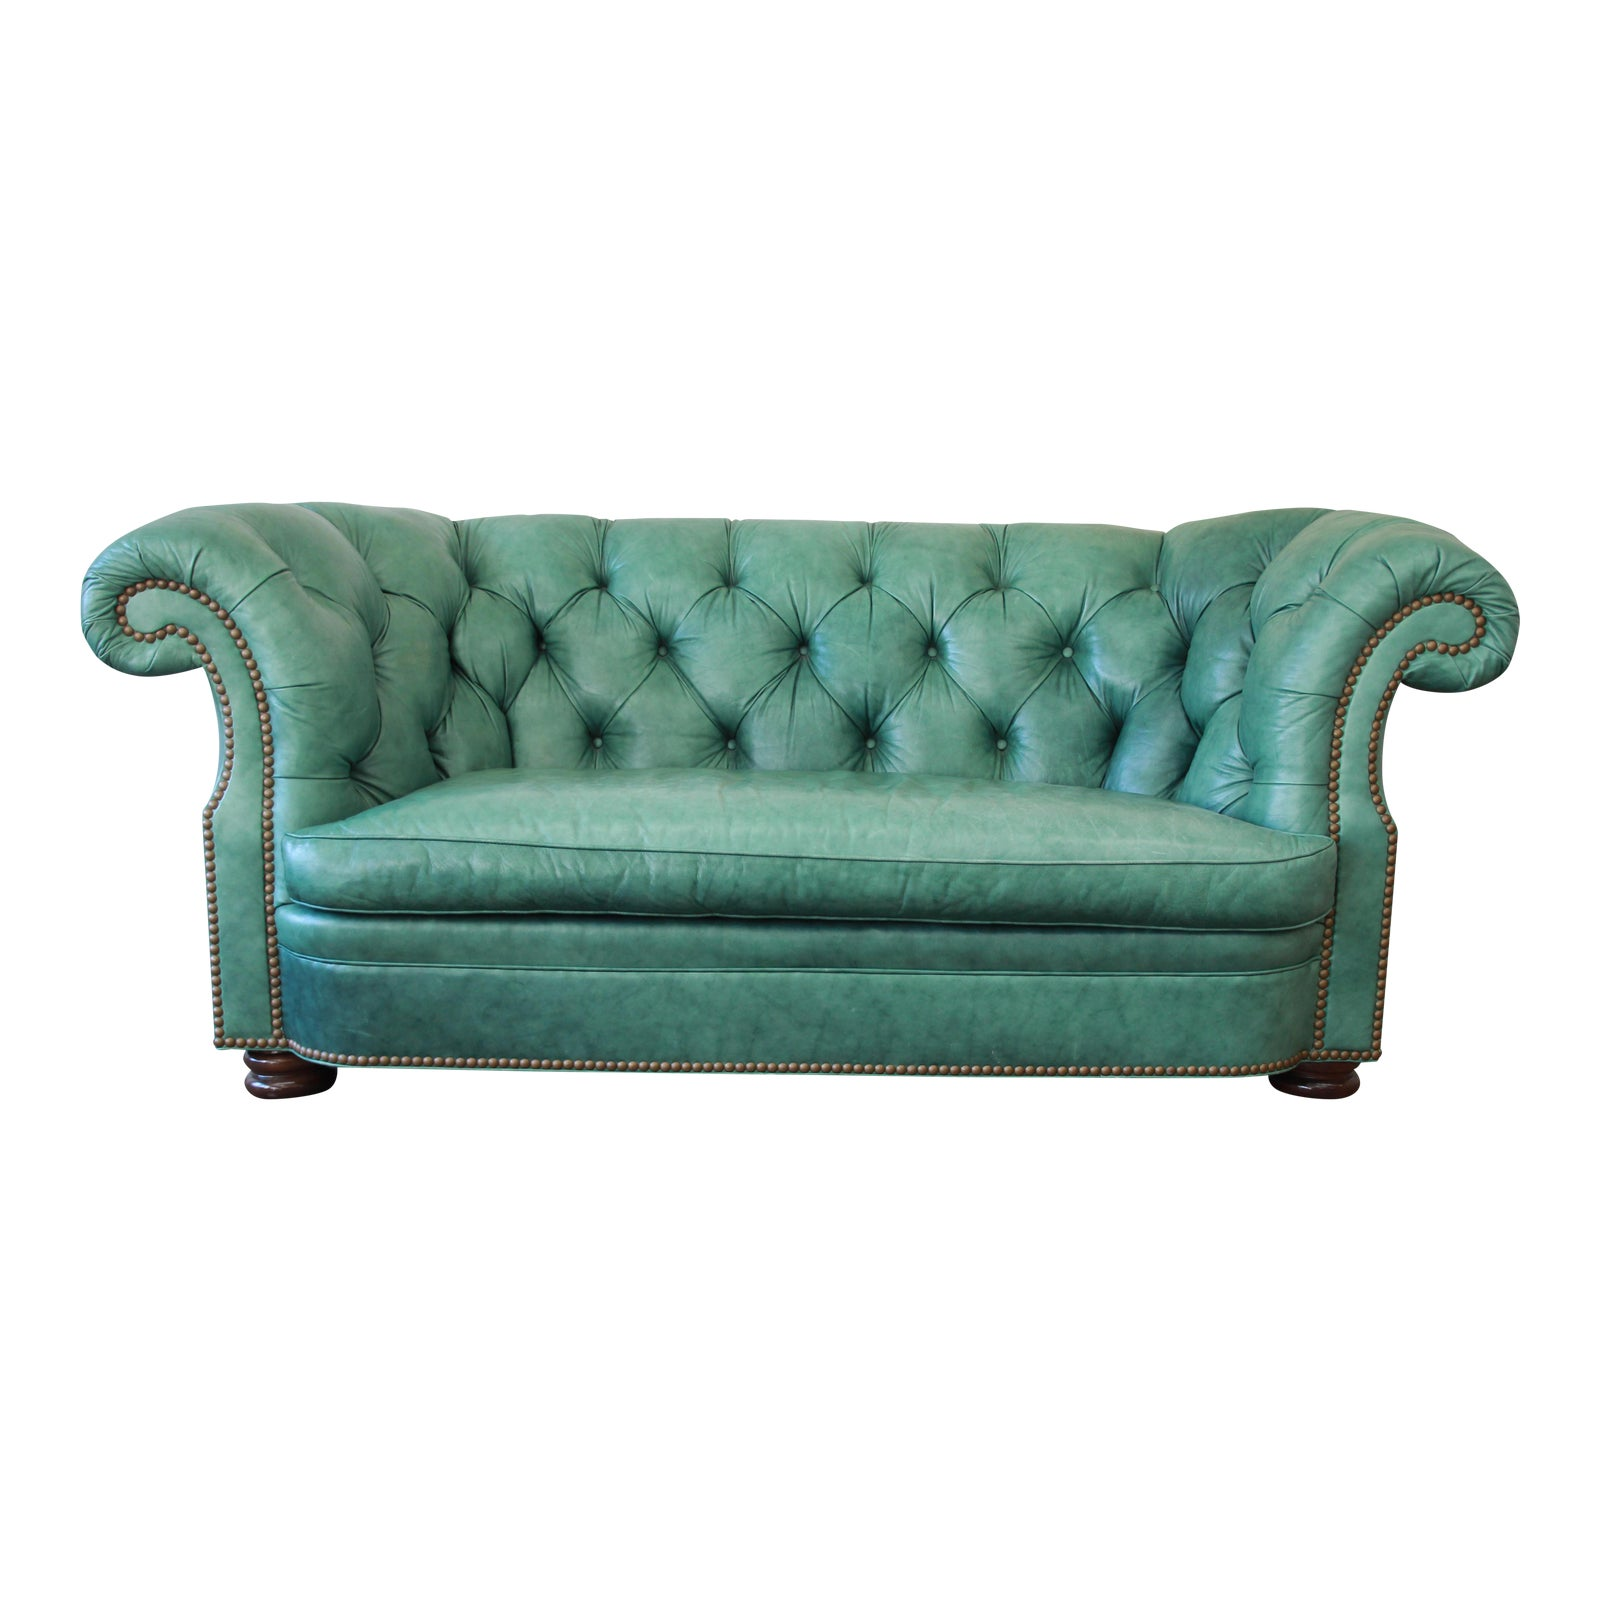 Superb Vintage Teal Tufted Leather Chesterfield Sofa By